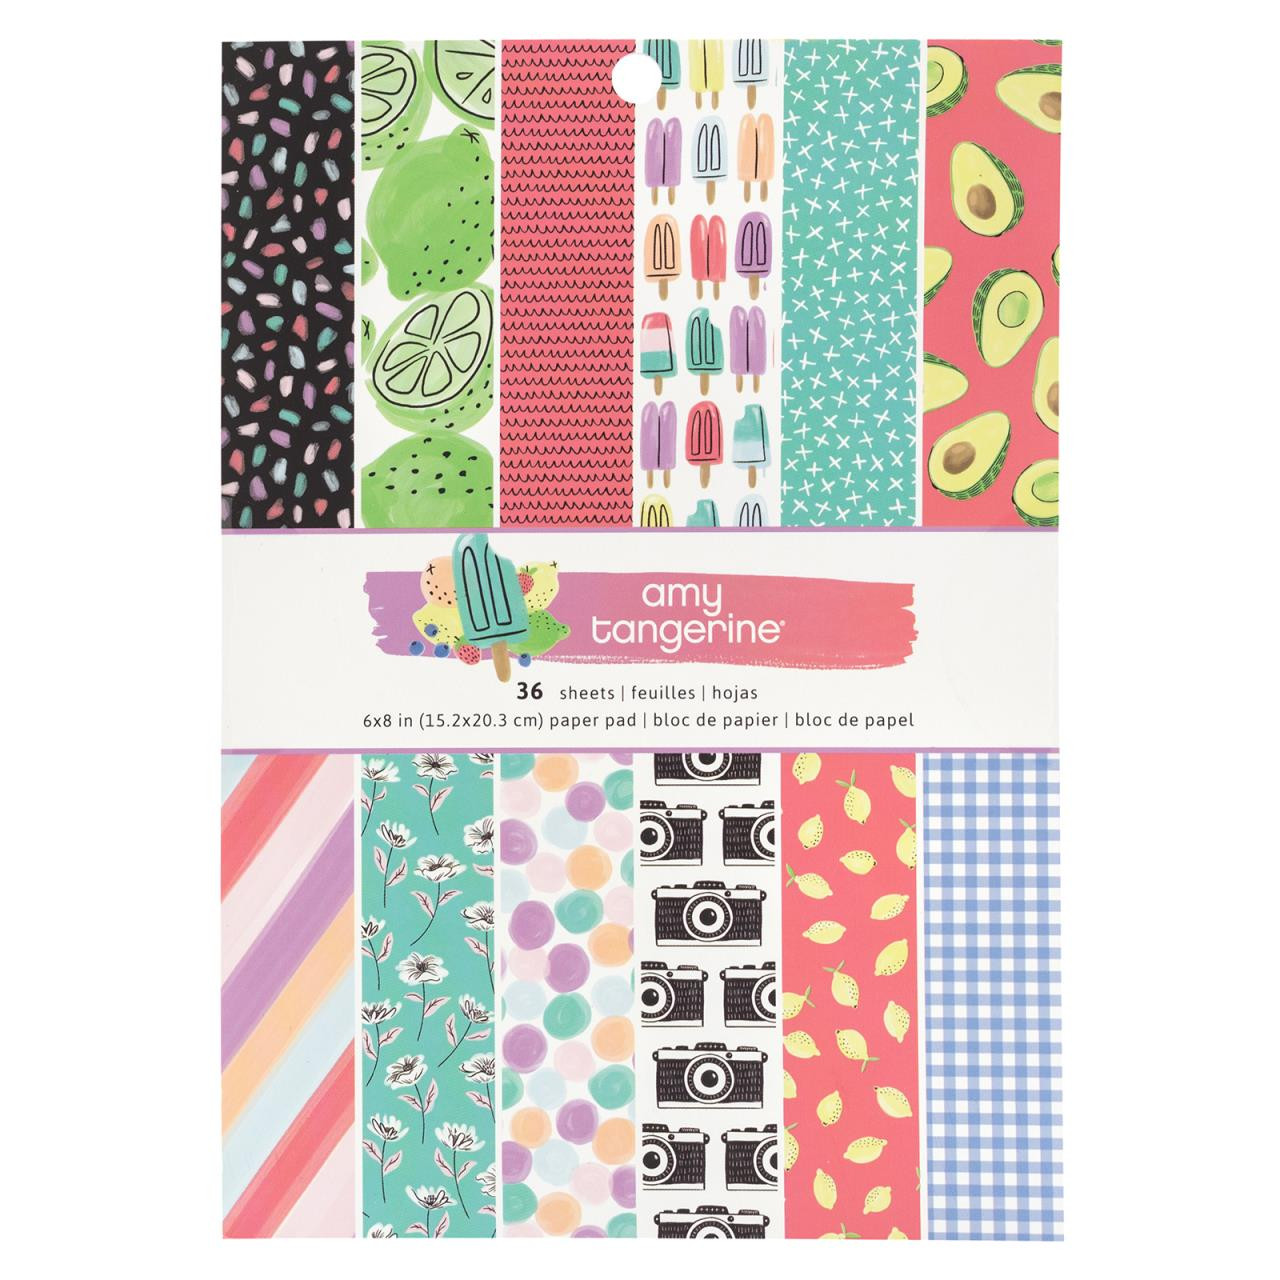 Stay Sweet, Amy Tangerine 6 X 8 Paper Pad - 718813511988